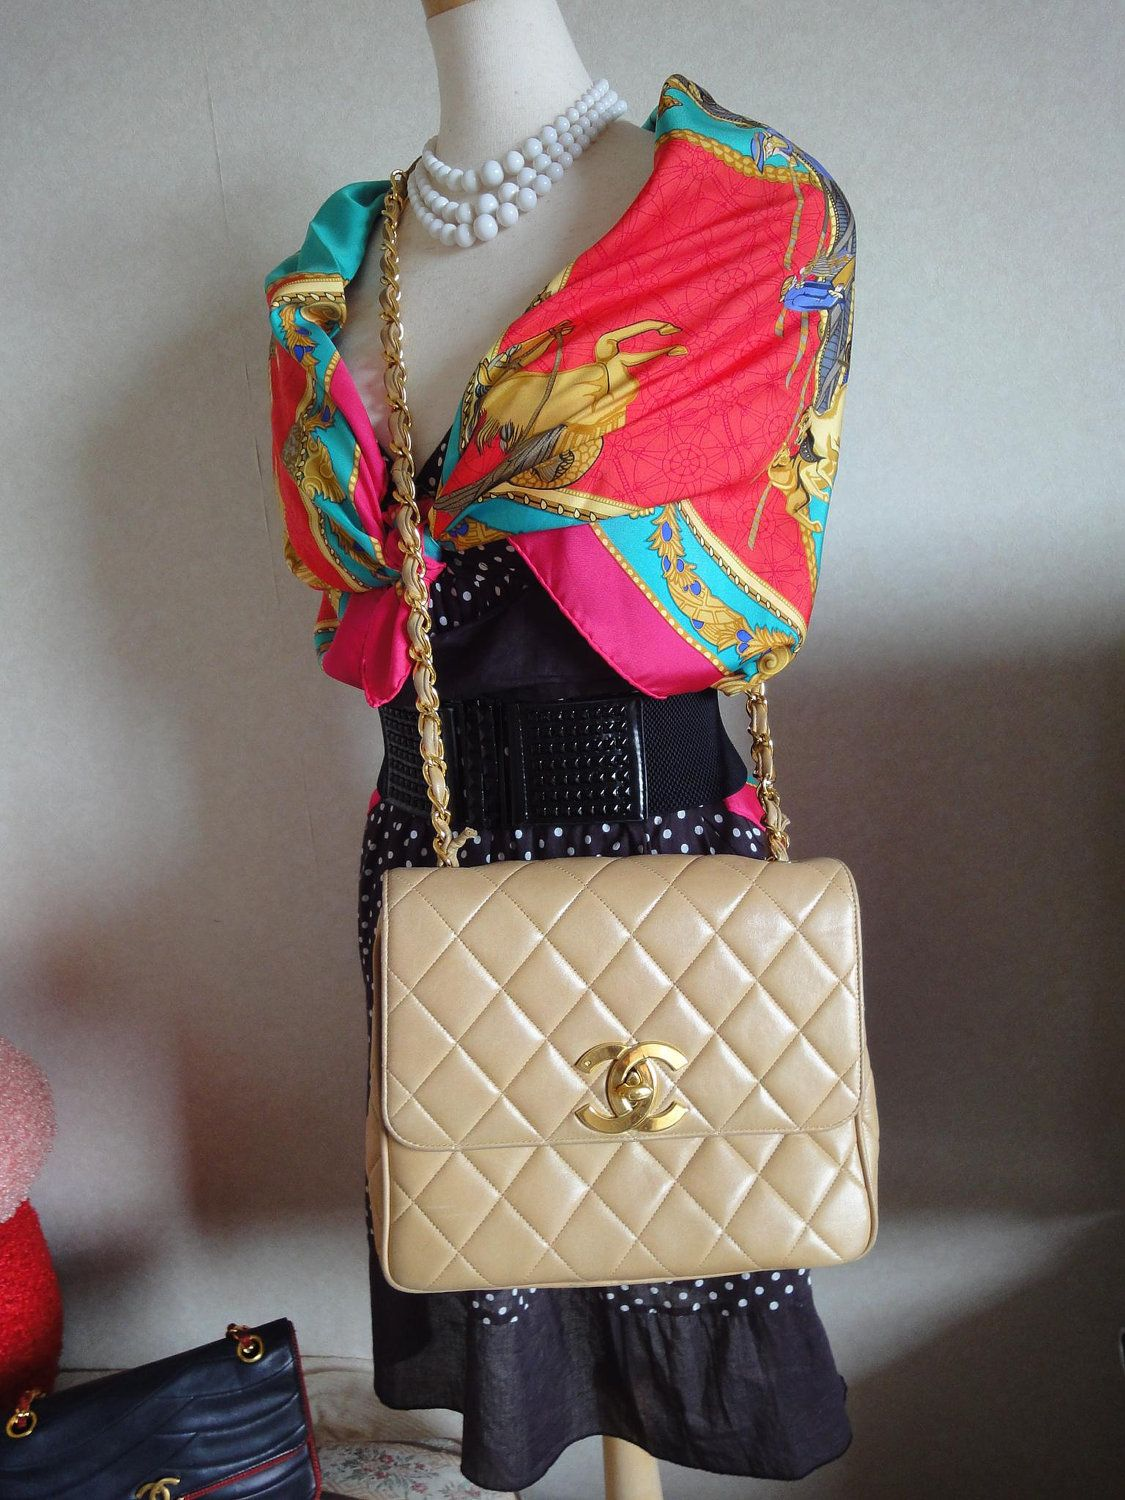 Vintage CHANEL Beige quilted lambskin purse with the big CC and gold-tone chain handle